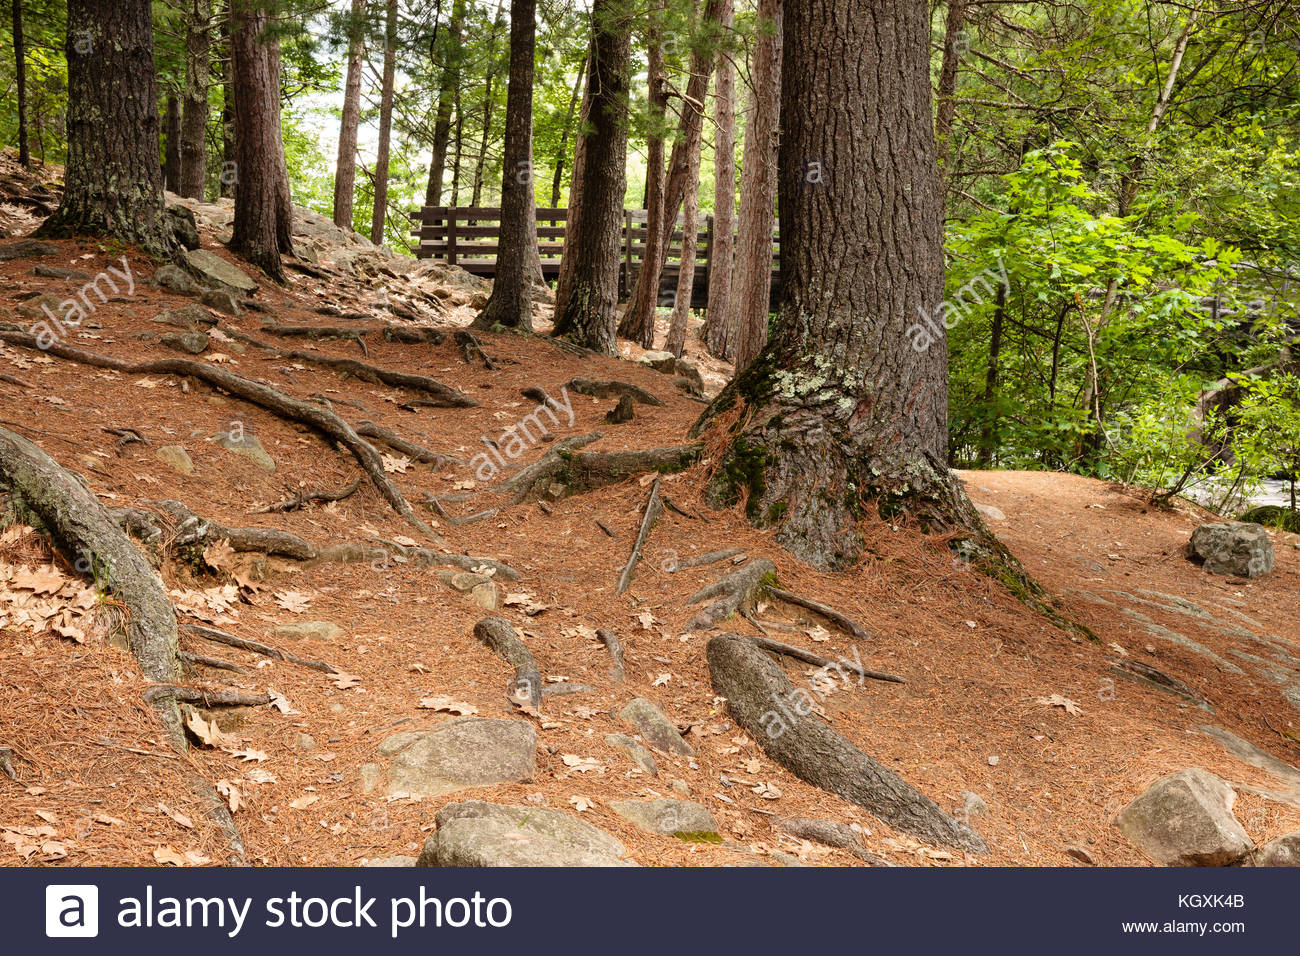 The pine needled forest shoreline of Pike River at Dave's Falls Marinette County Park, Amberg, Wisconsin in - Stock Image